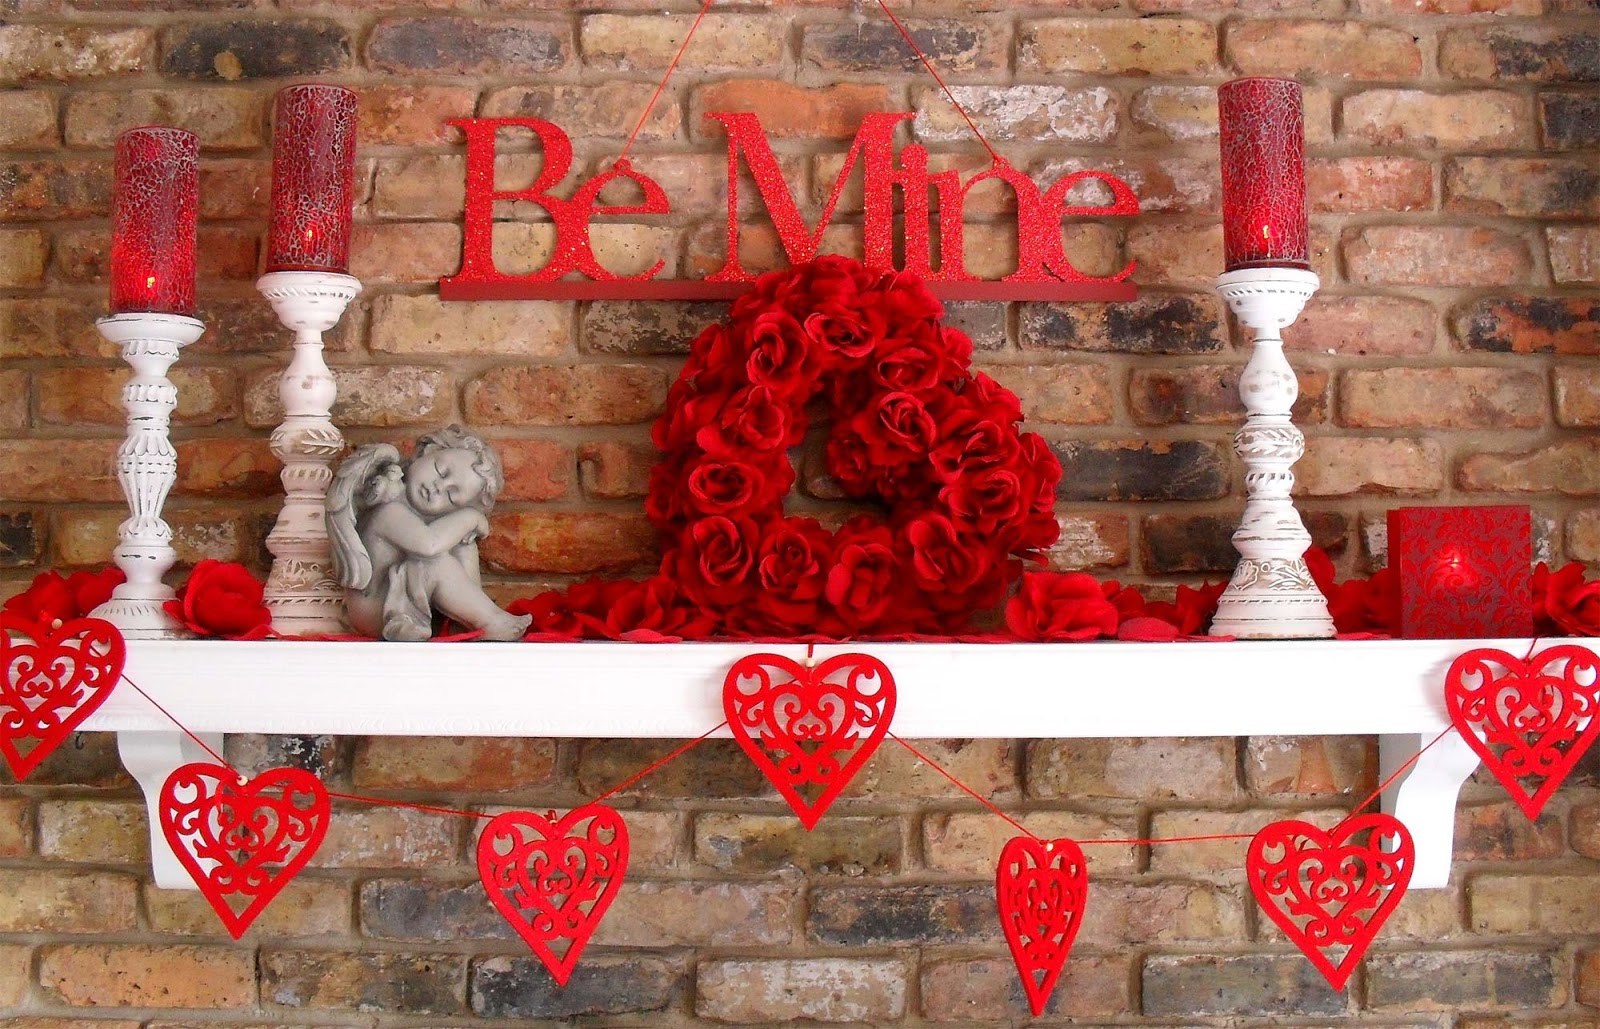 Valentineu0027s Day Decorations Ideas 2013 To Decorate Bedroom,office And House